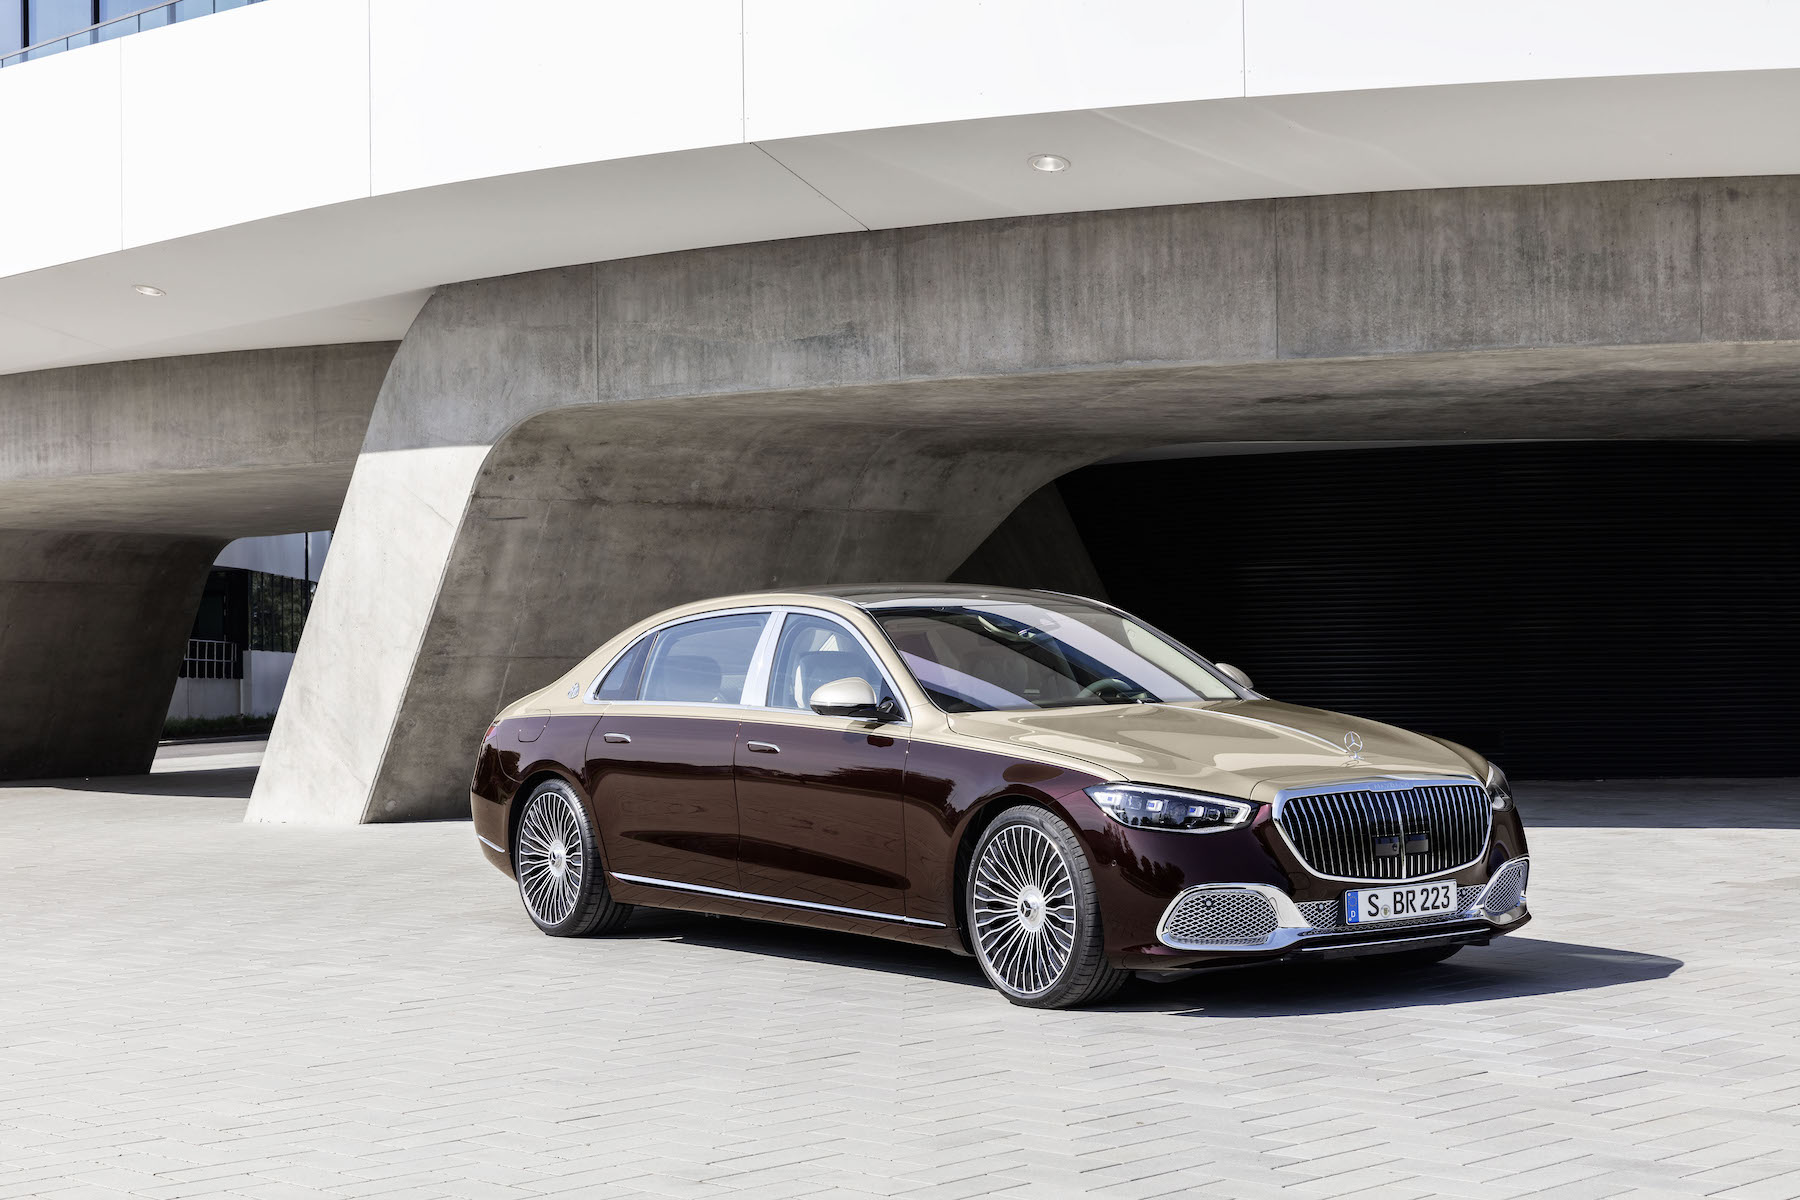 Mercedes-Maybach S Class unveiled as new luxury flagship